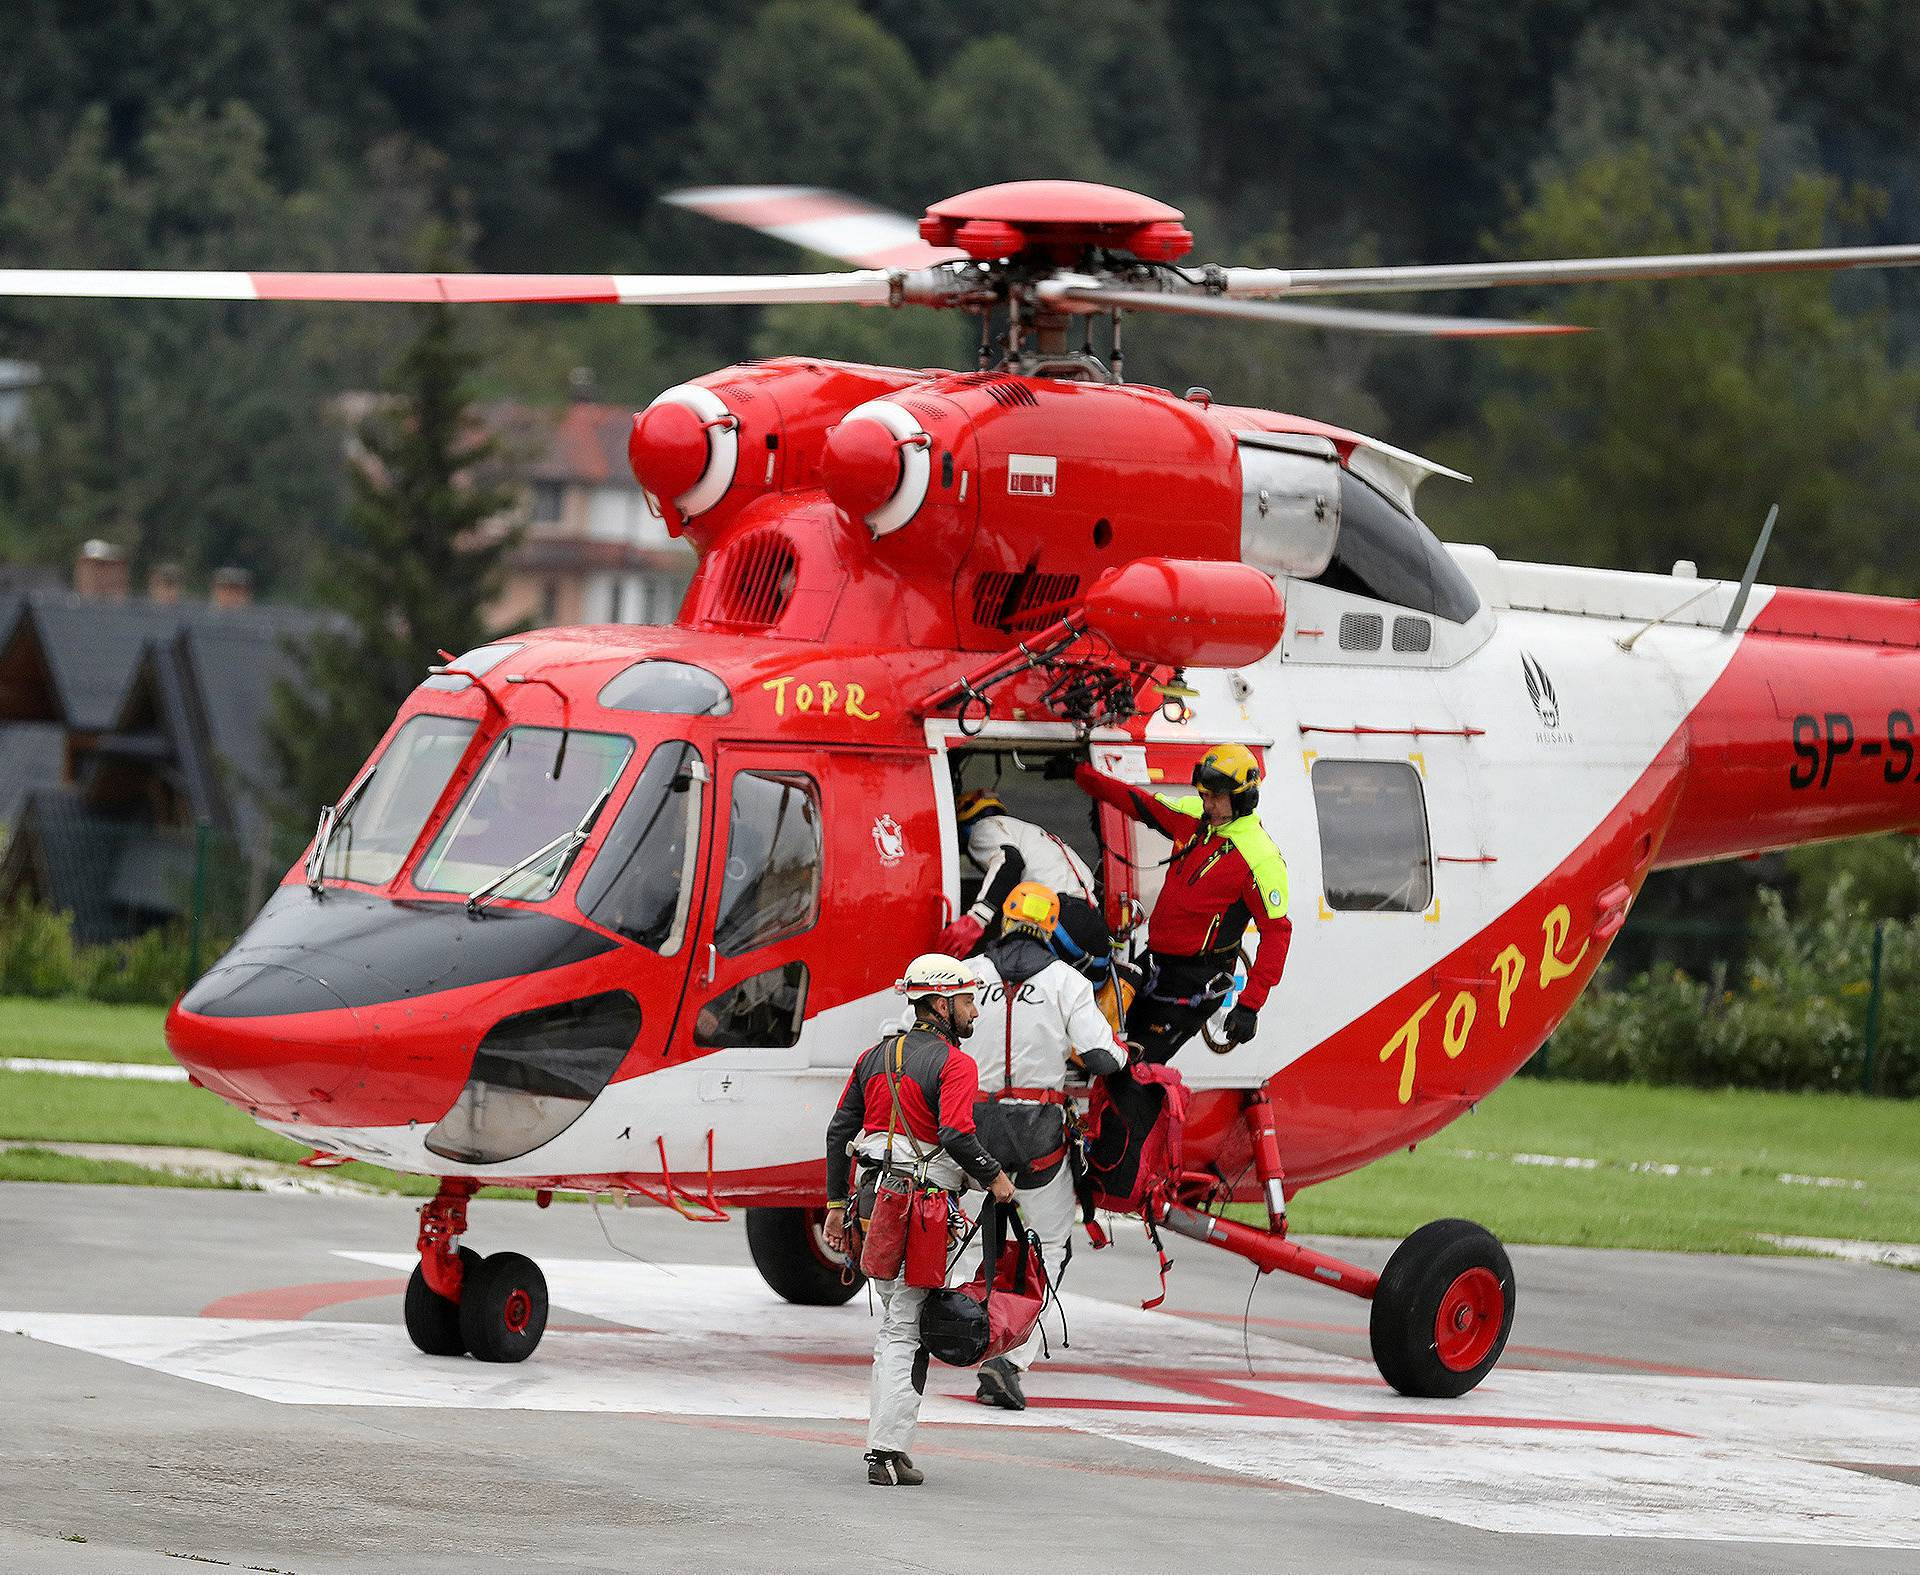 Mountain rescue team (TOPR) members board a helicopter in Zakopane